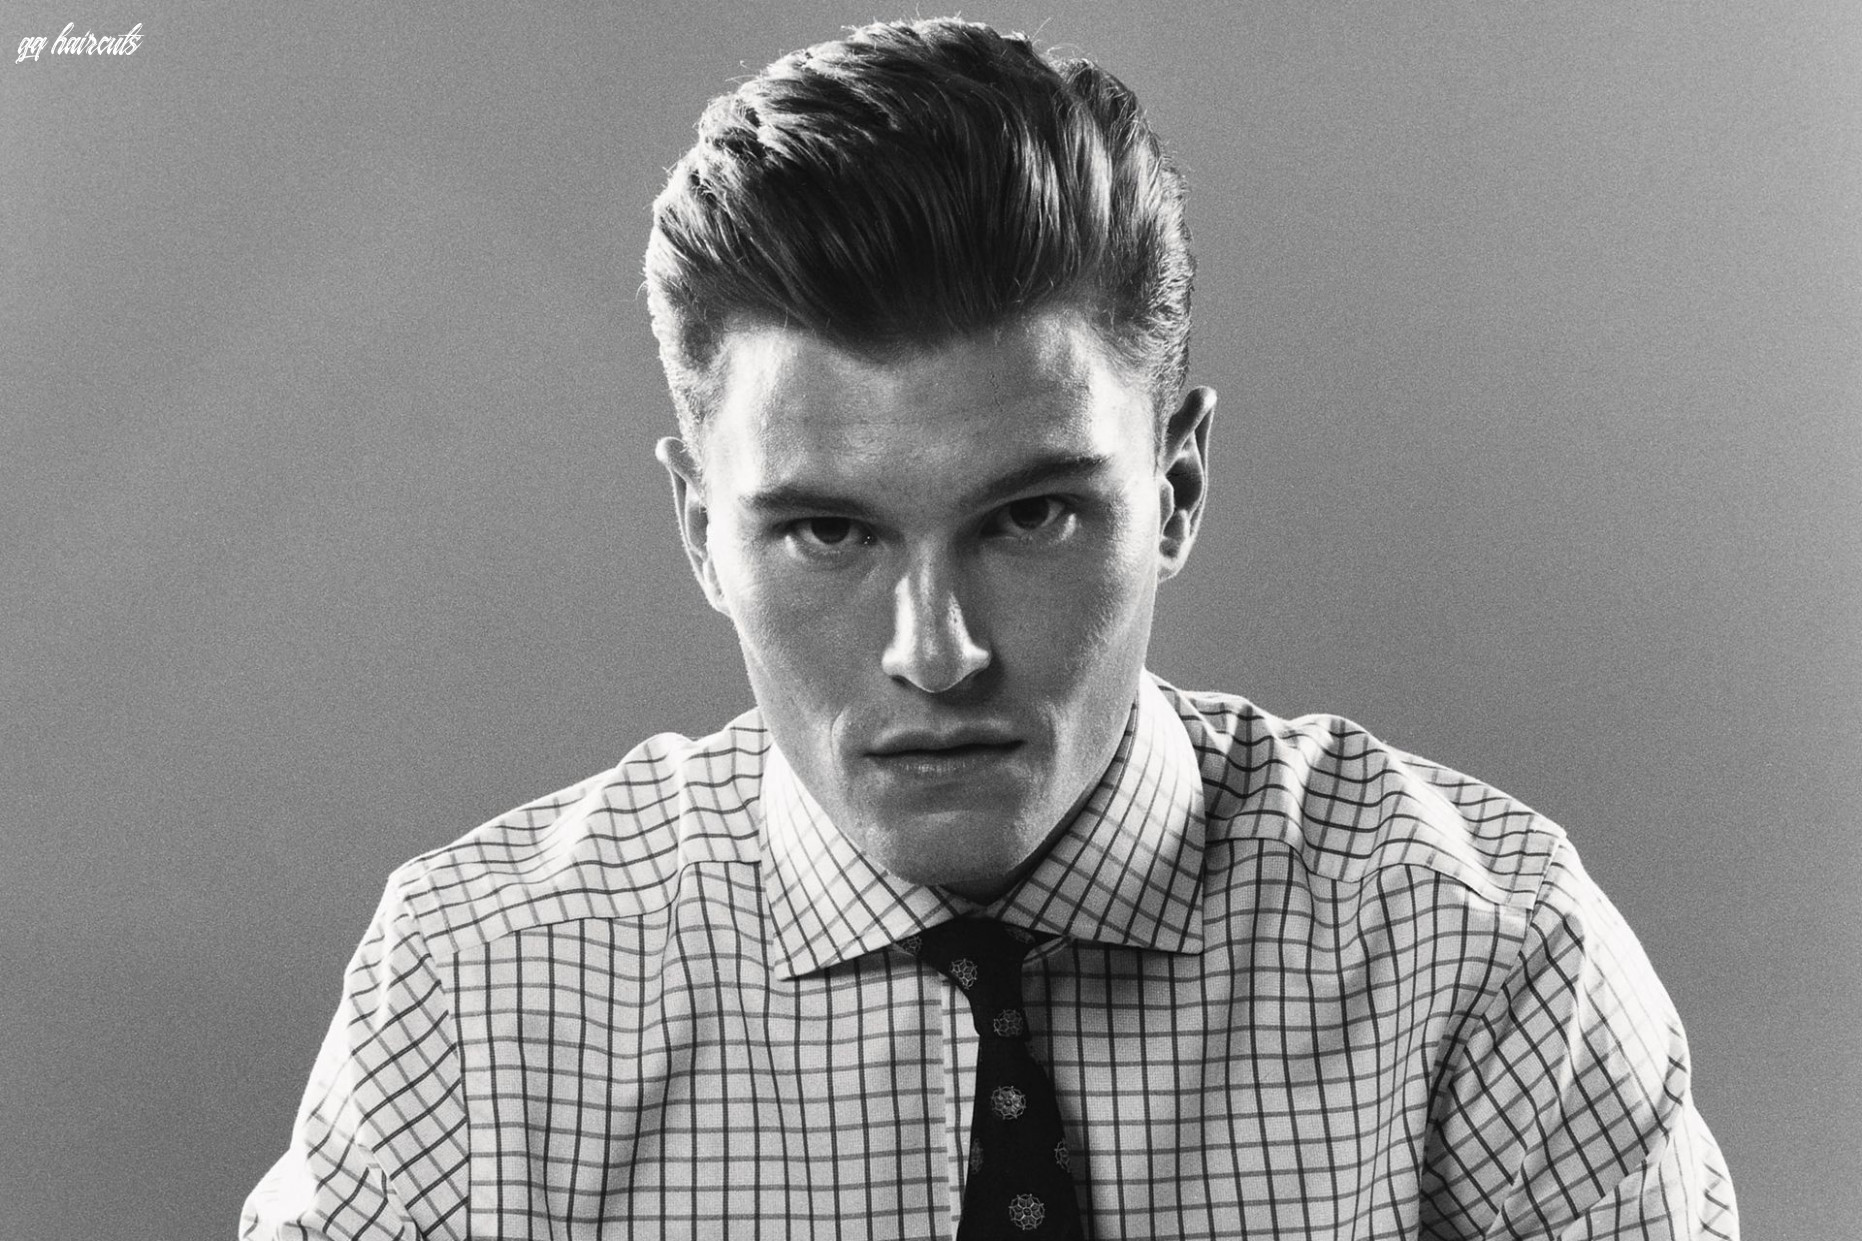 8 of the best short men's haircuts for work | British GQ